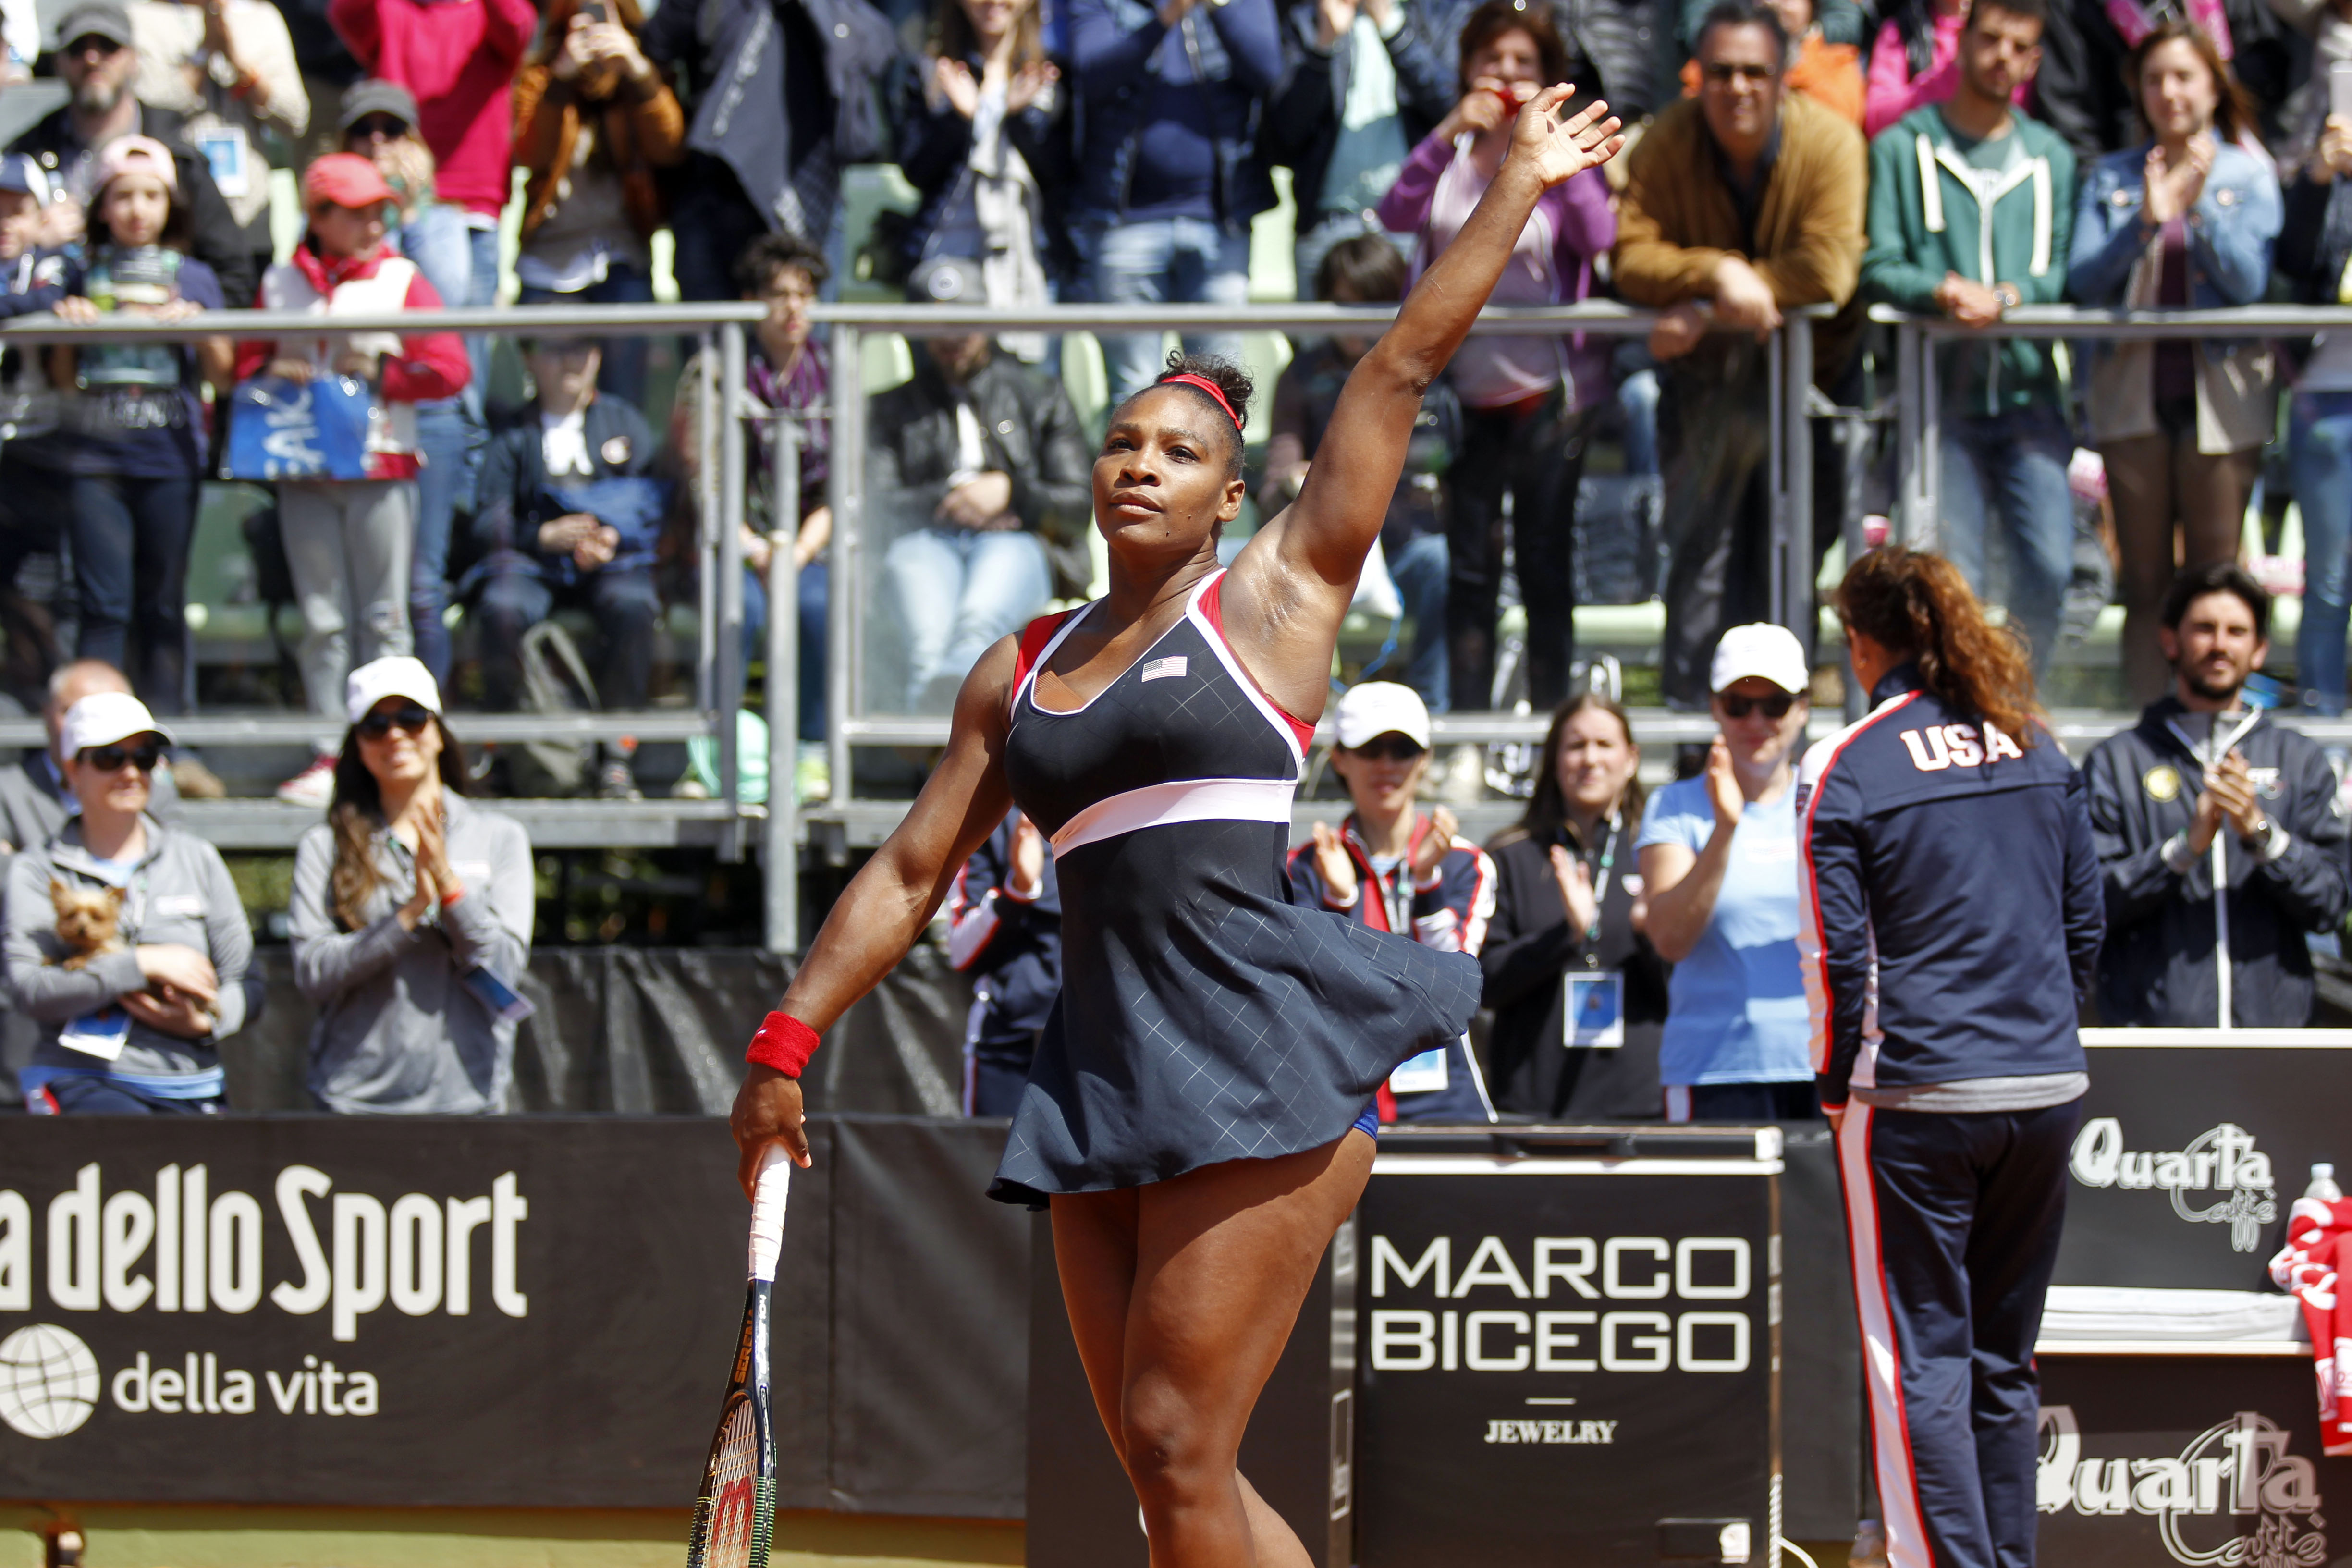 Serena Williams has a solution to liven up Fed Cup